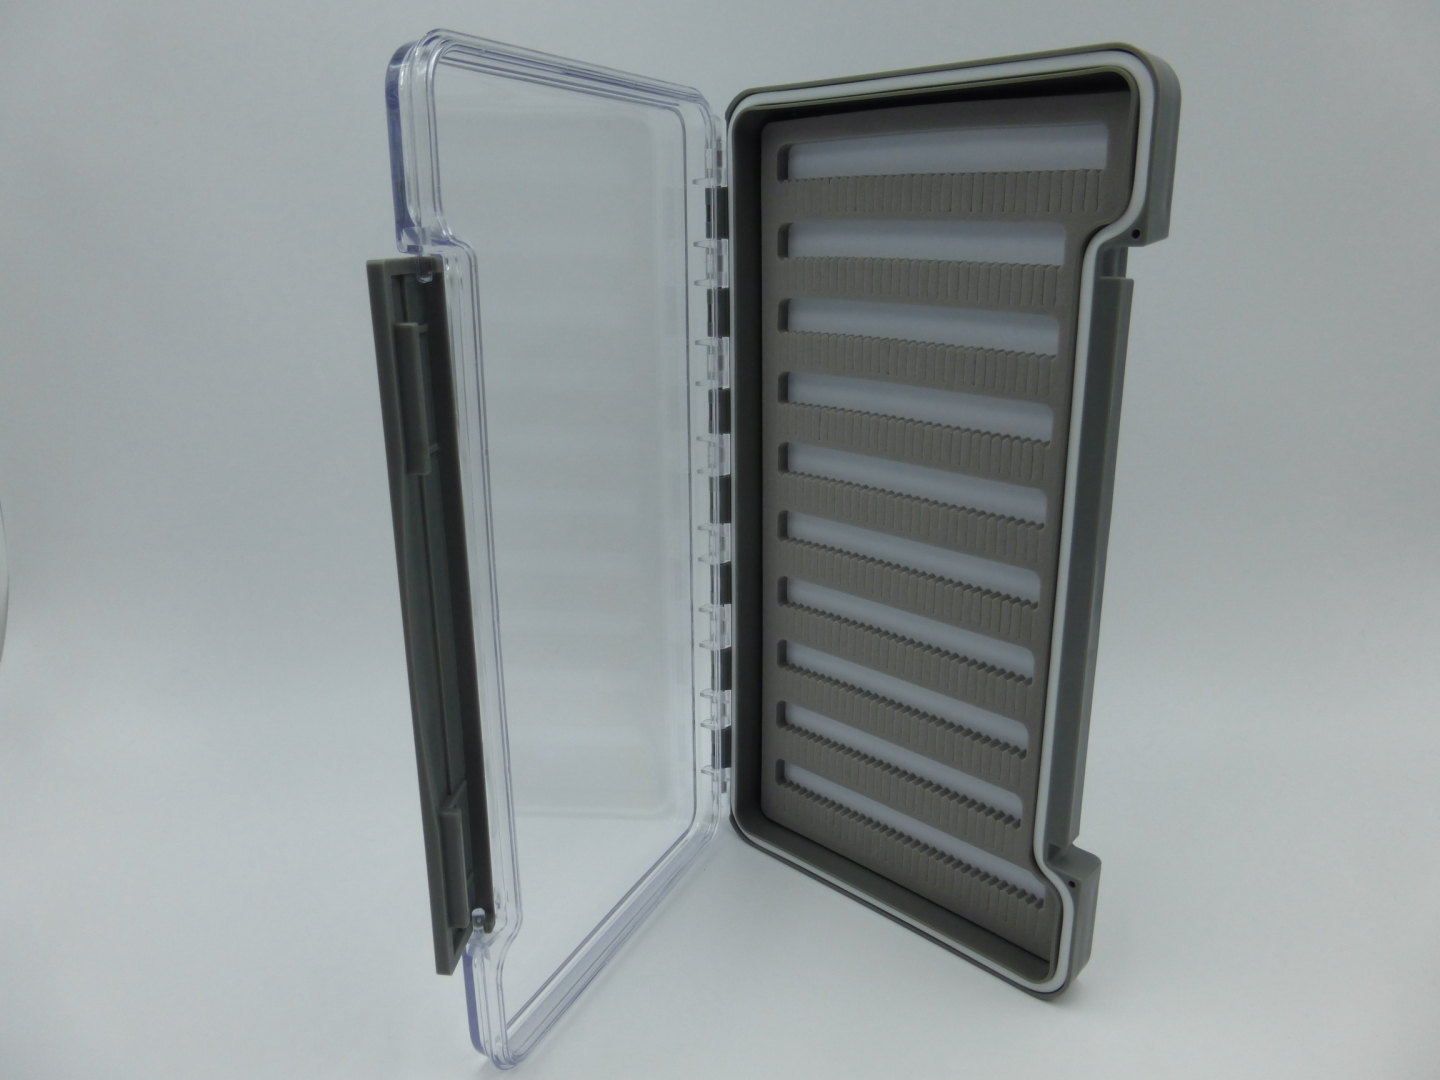 Fly Box 500 XL - A